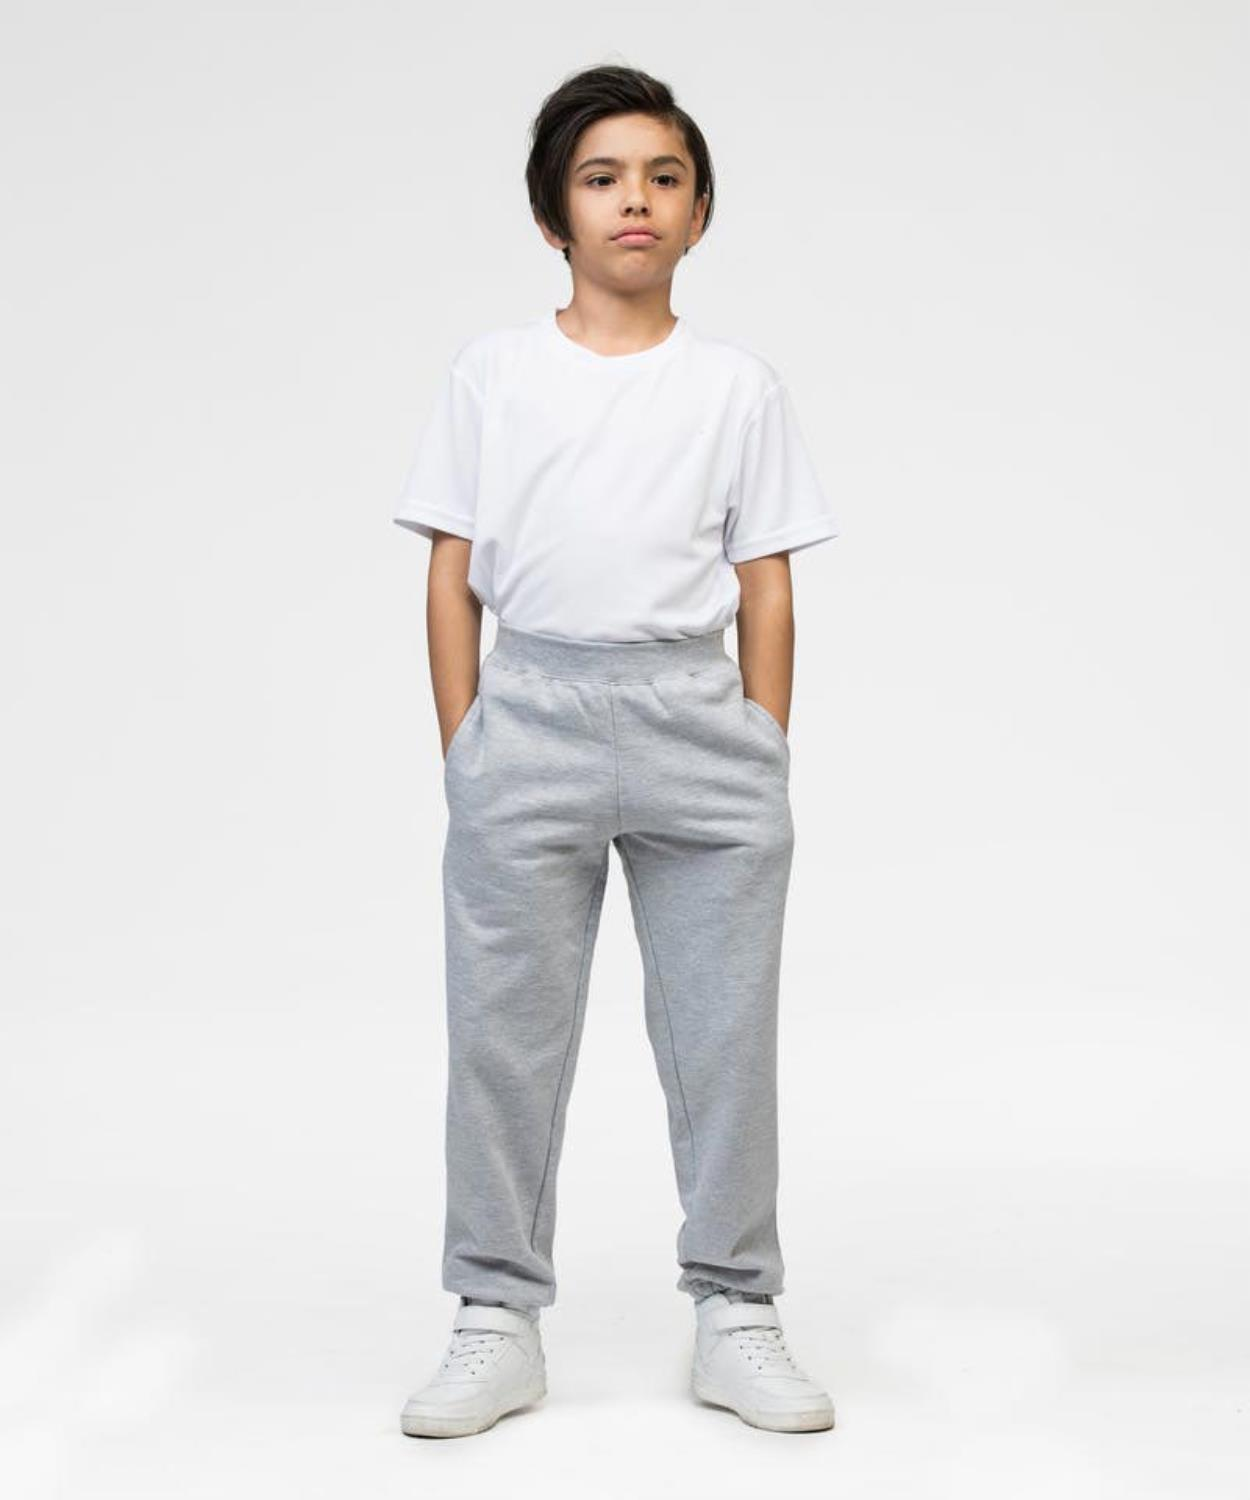 JH072B - Kids Cuffed Jog Pants